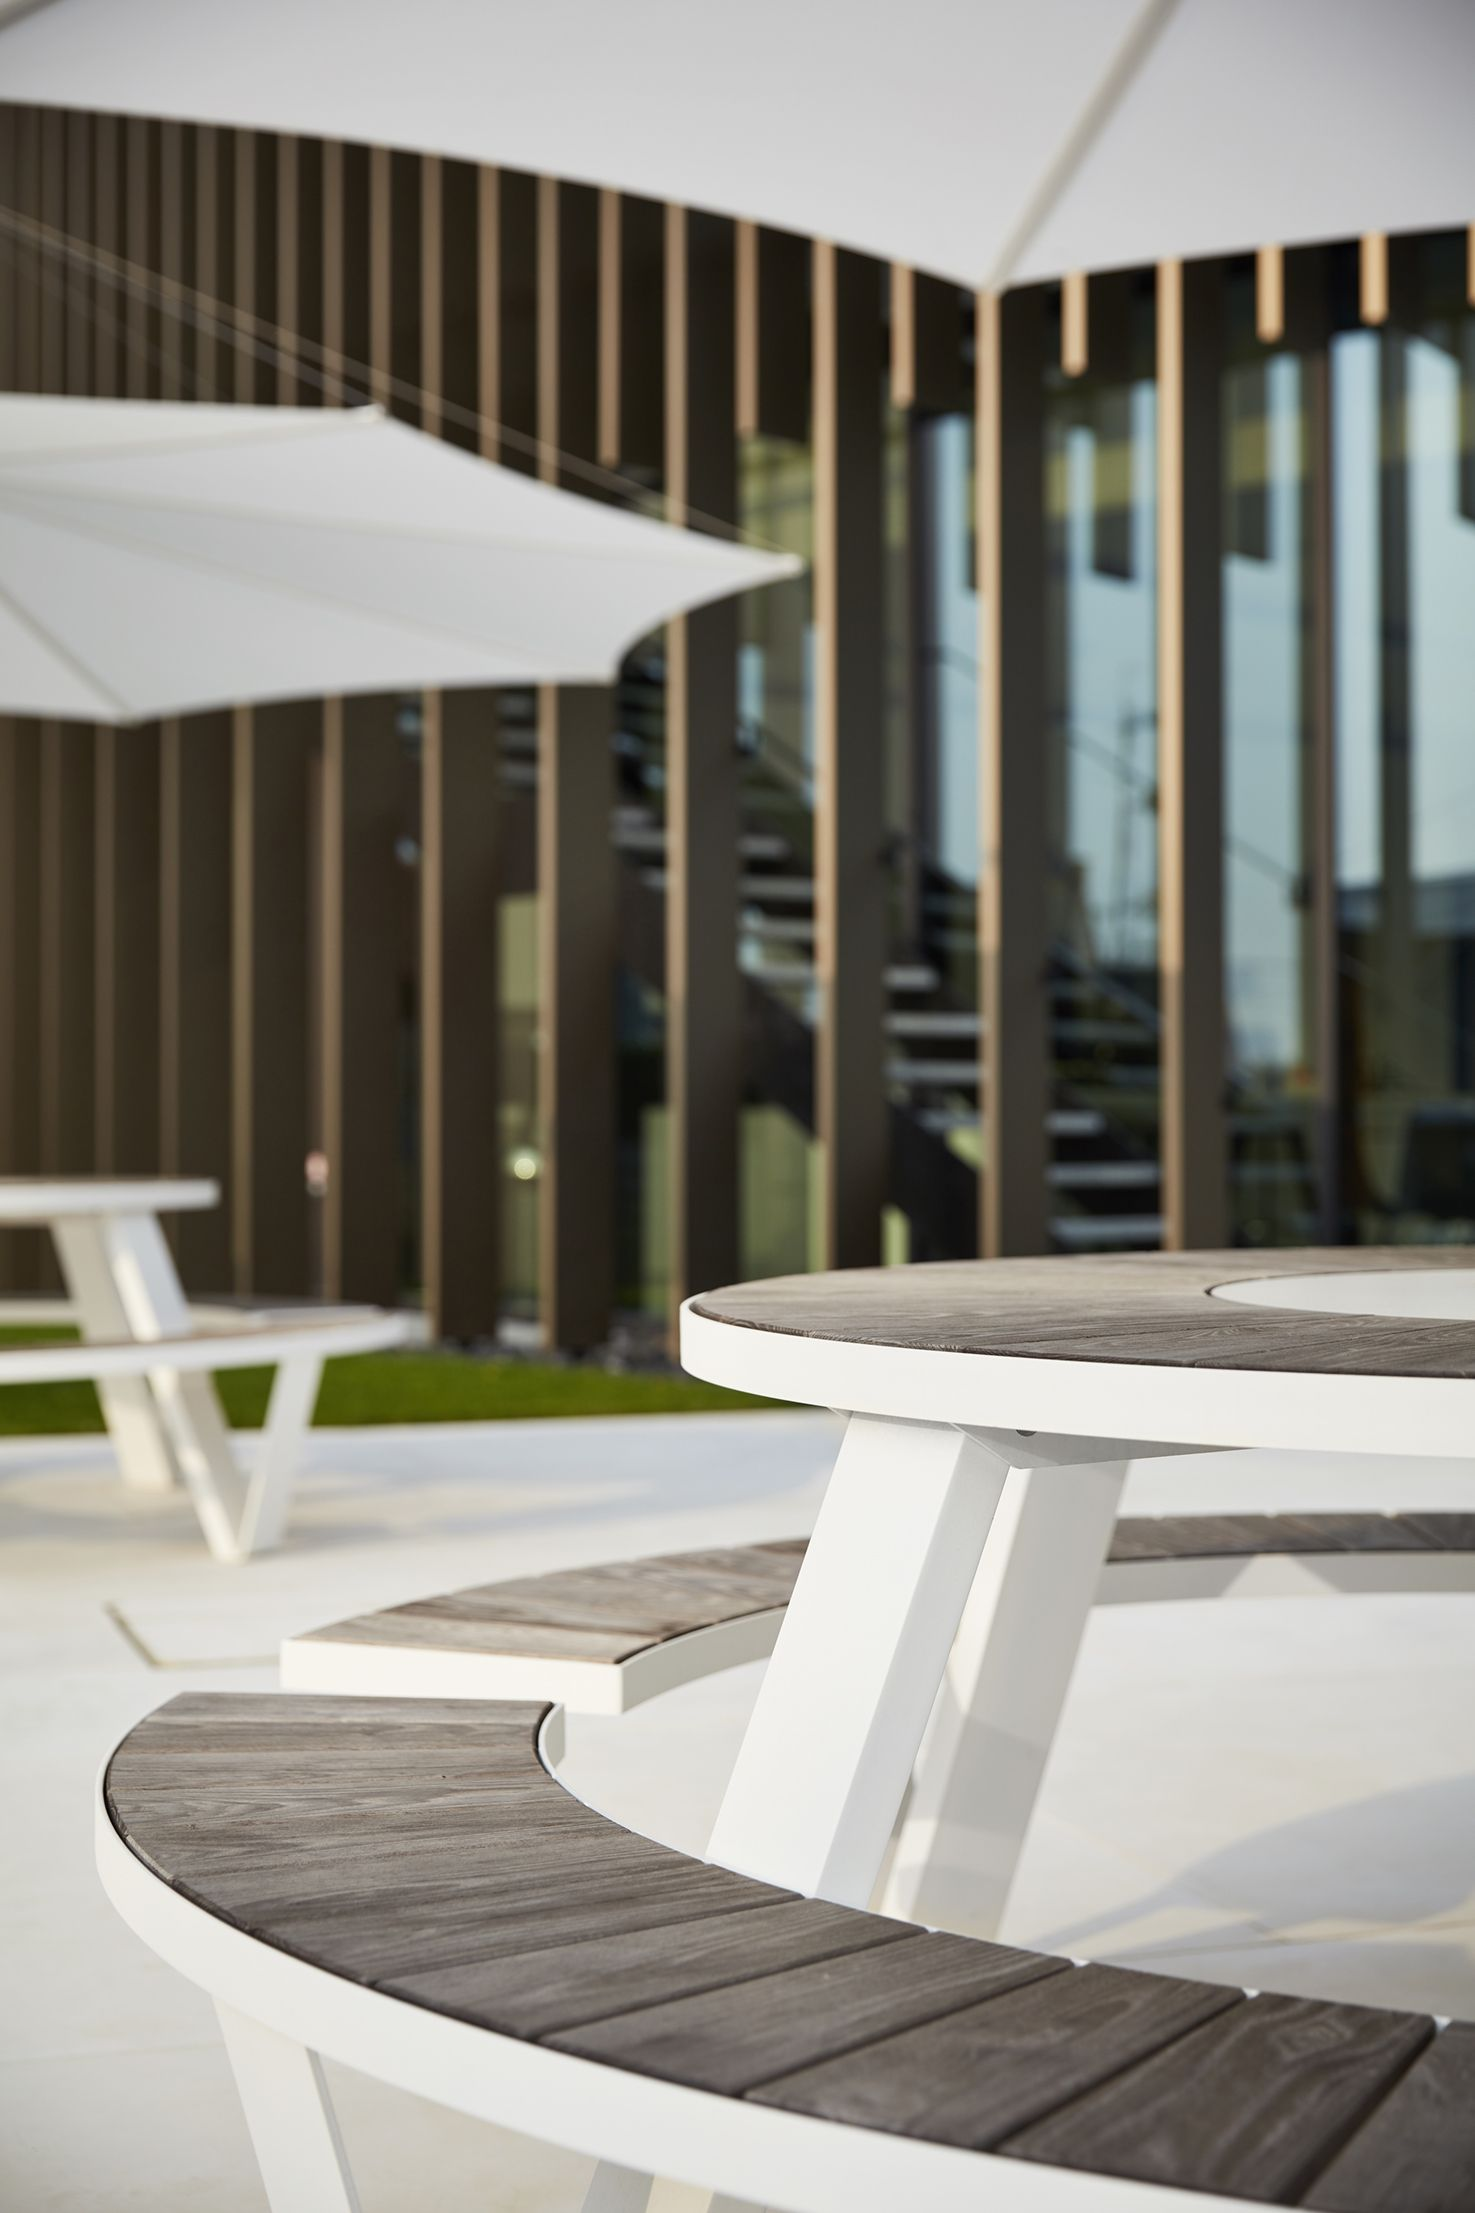 White Round Outdoor Cafe Table Order Now At Eist